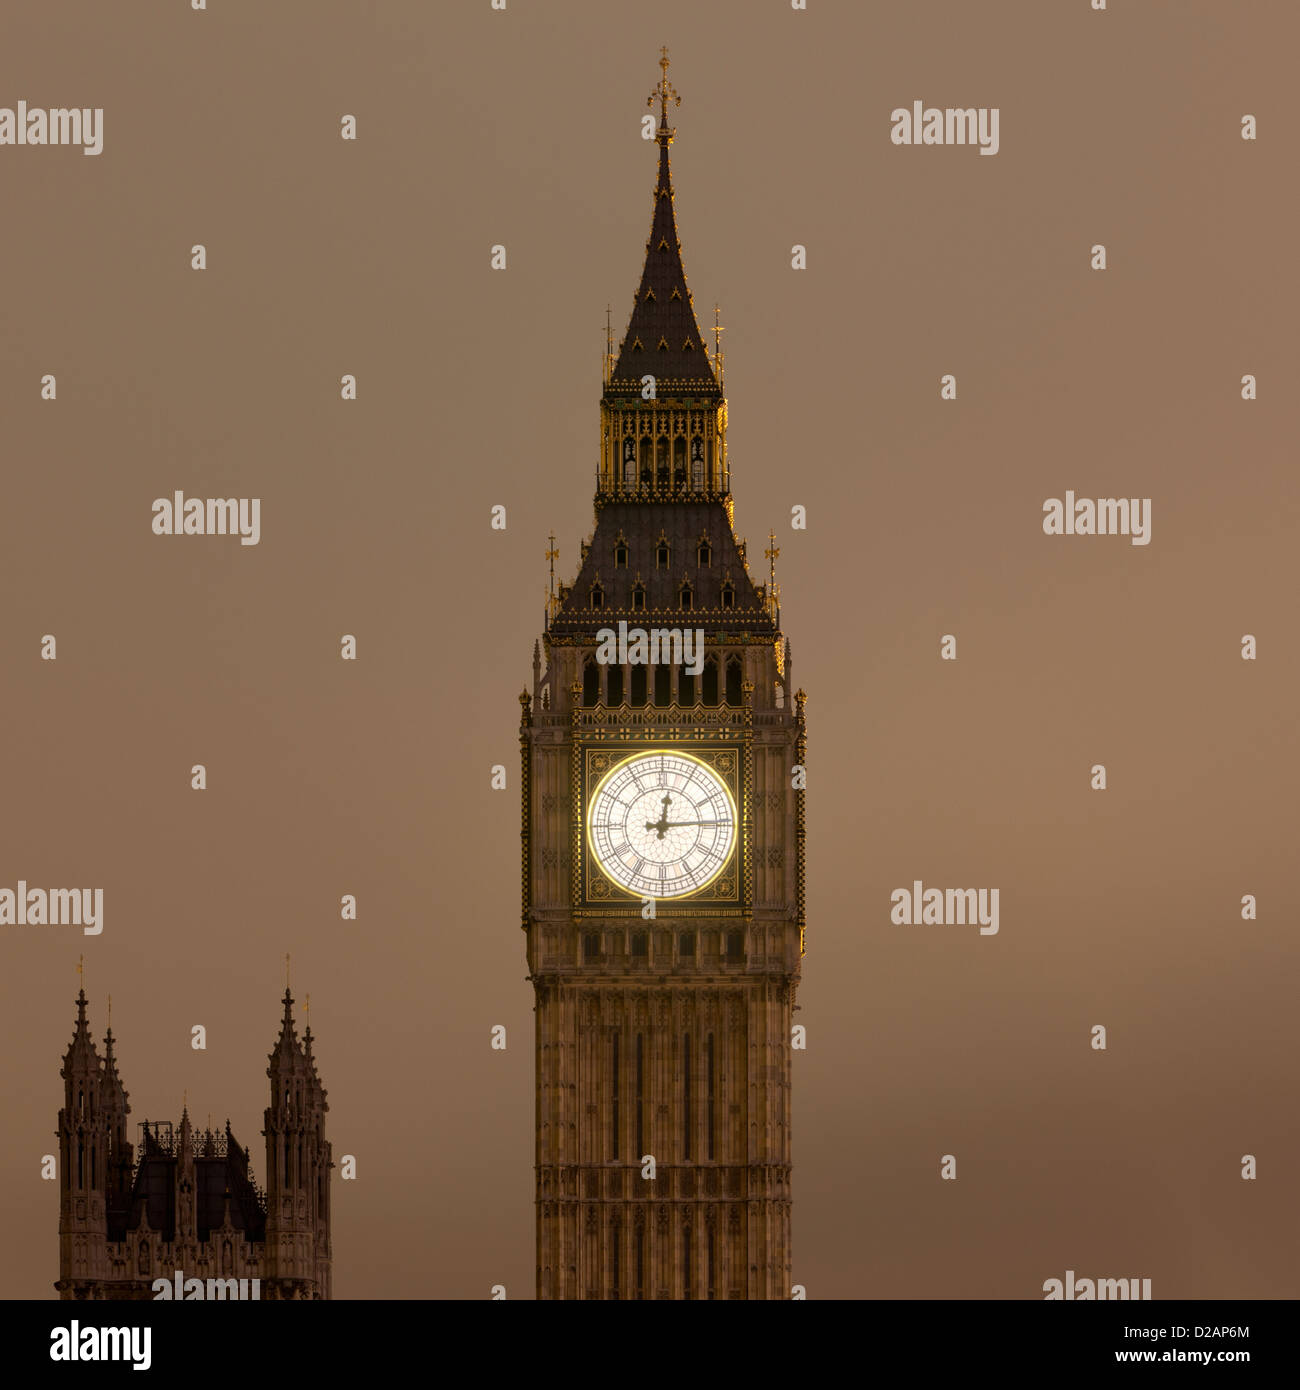 Big Ben clock tower lit up at night - Stock Image